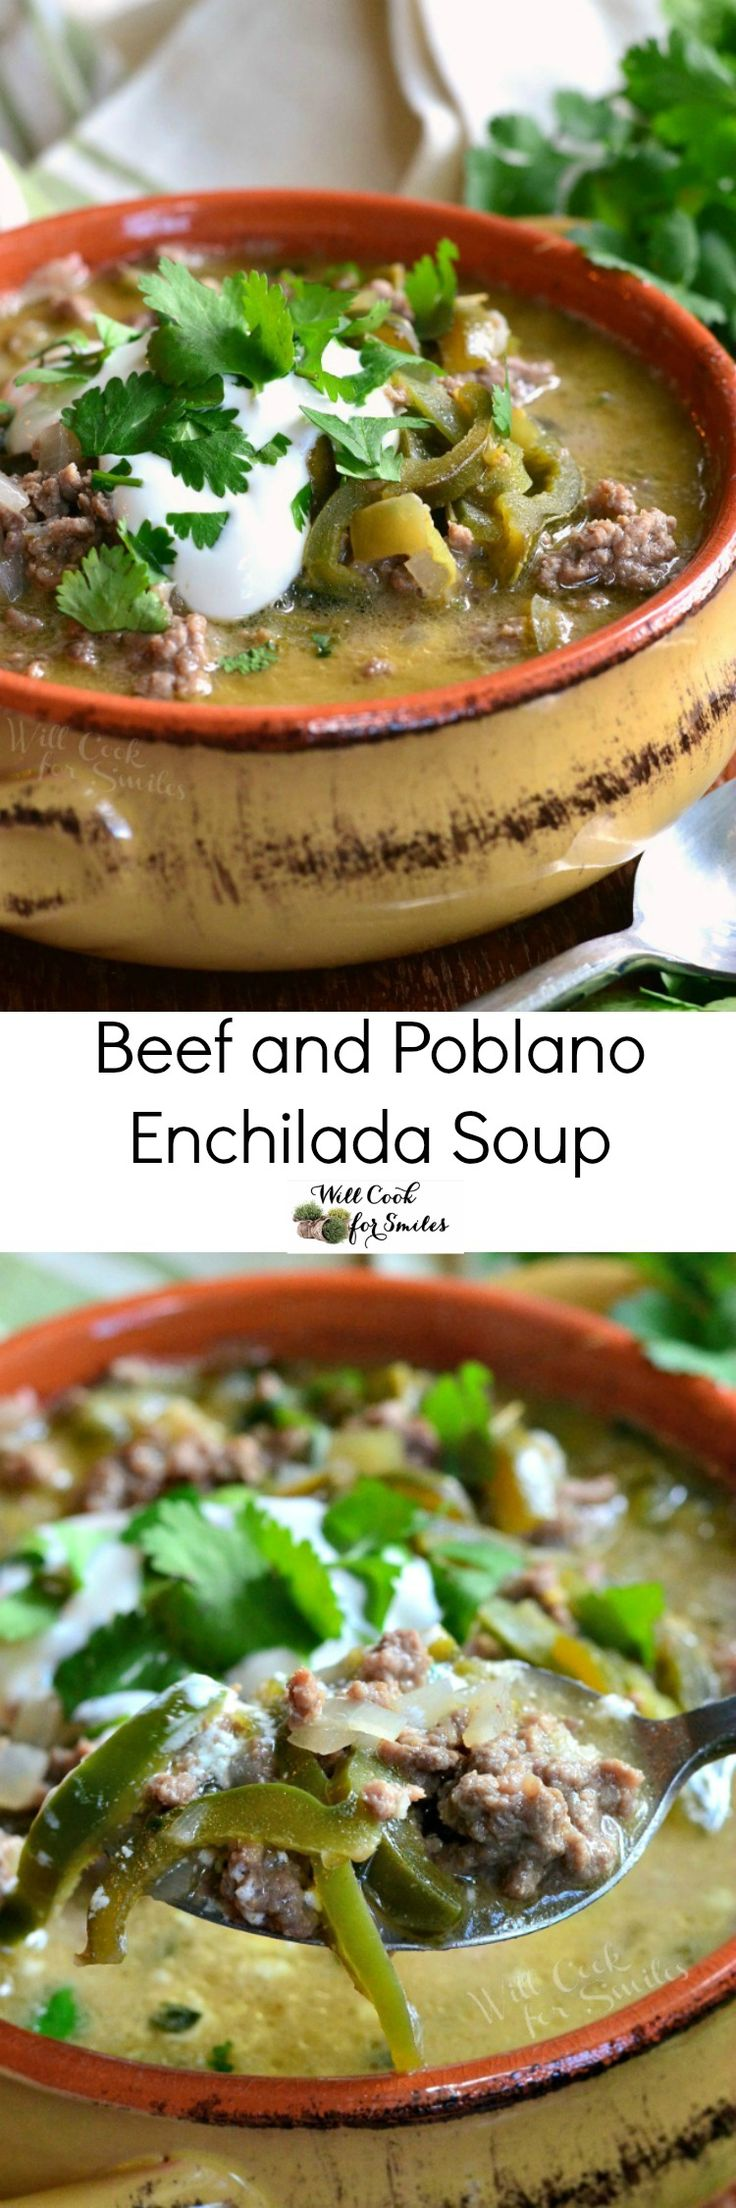 Beef and Poblano Enchilada Soup. Wonderful beef enchilada soup that's loaded with veggies and poblano peppers.